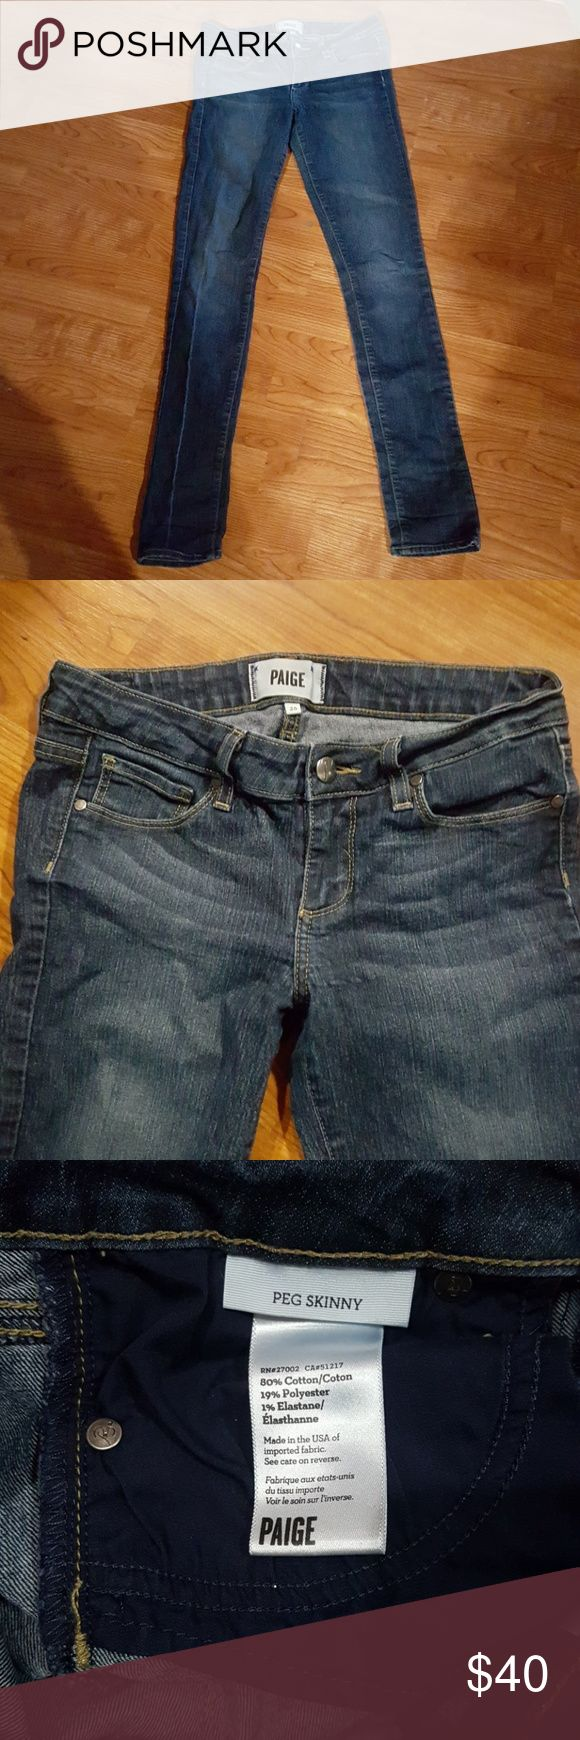 SALE TODAY!! PAIGE JEANS Make me a reasonable offer on these Paige Denim Peg Skinny Jeans! Size 26 Paige Jeans Jeans Skinny